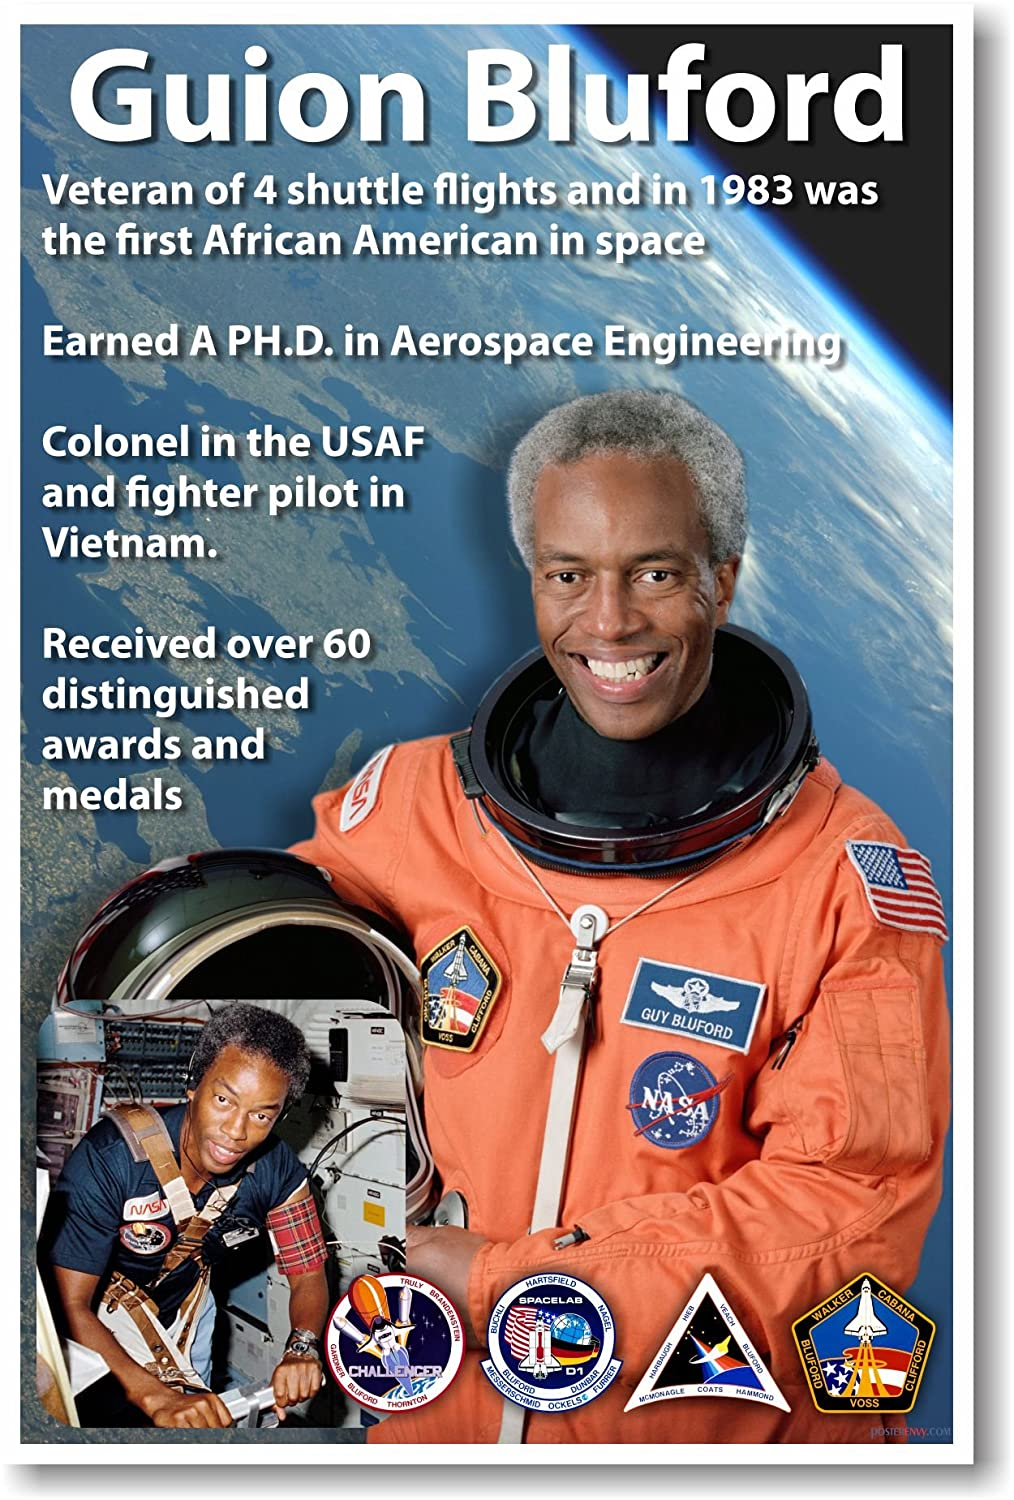 Guion Bluford - NEW African American NASA Astronaut Space Poster